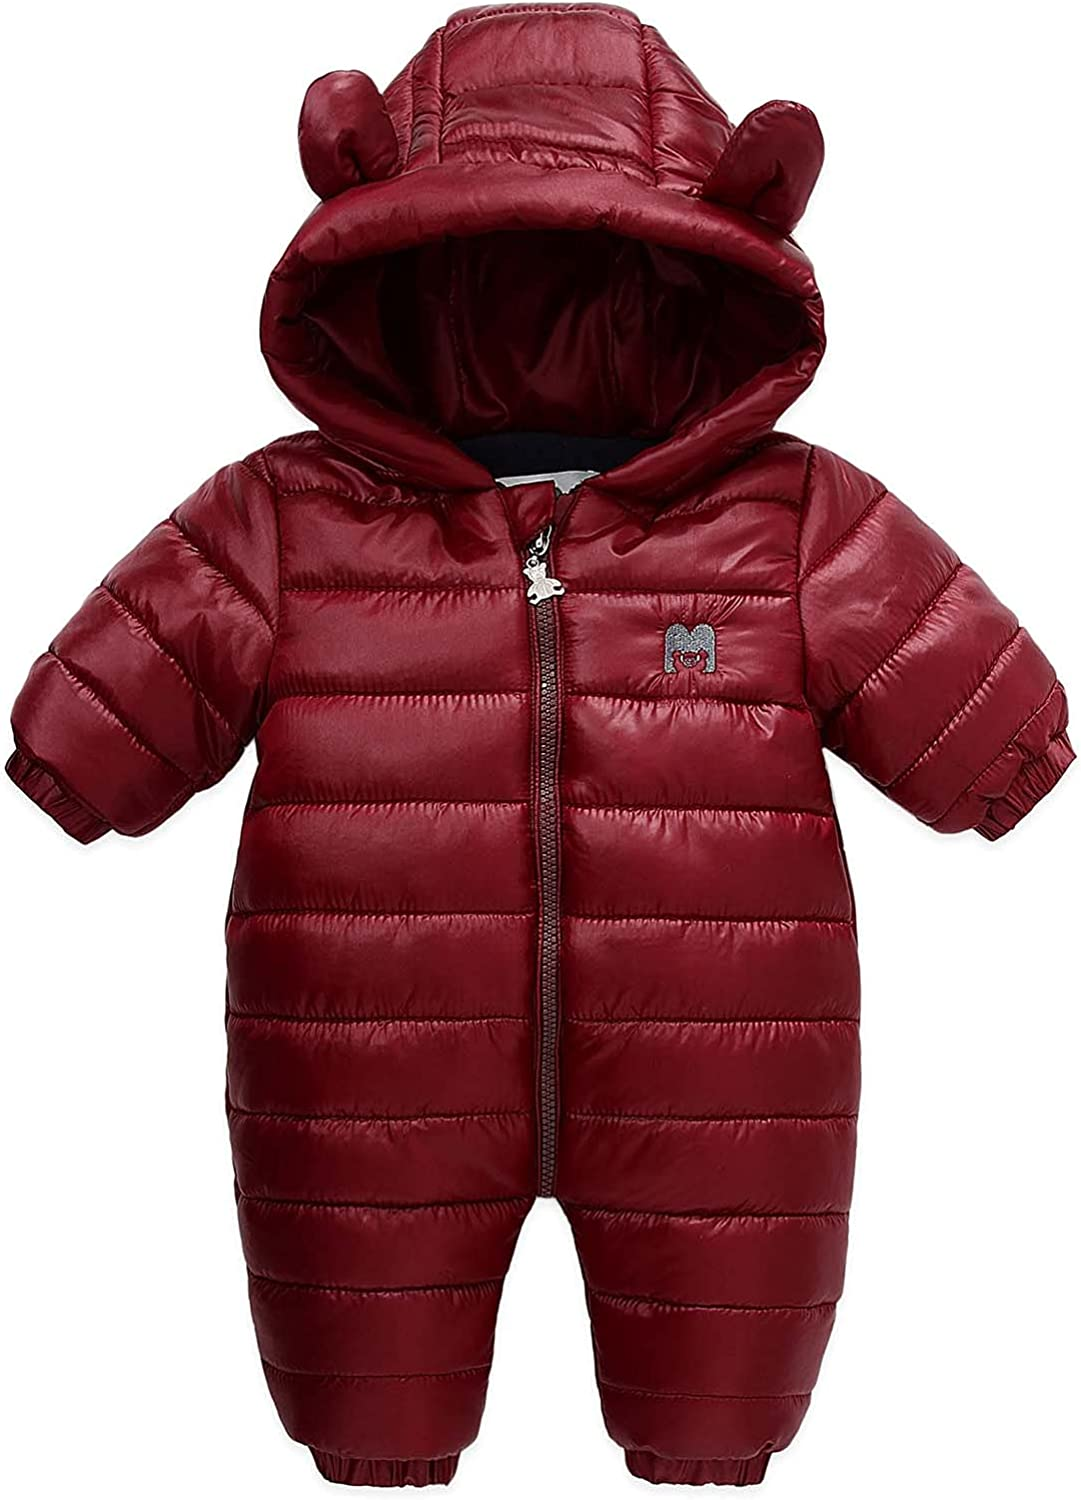 Baby Winter Candy Color Jumpsuit Snowsuit with Hood Zipped Toddler Outfit